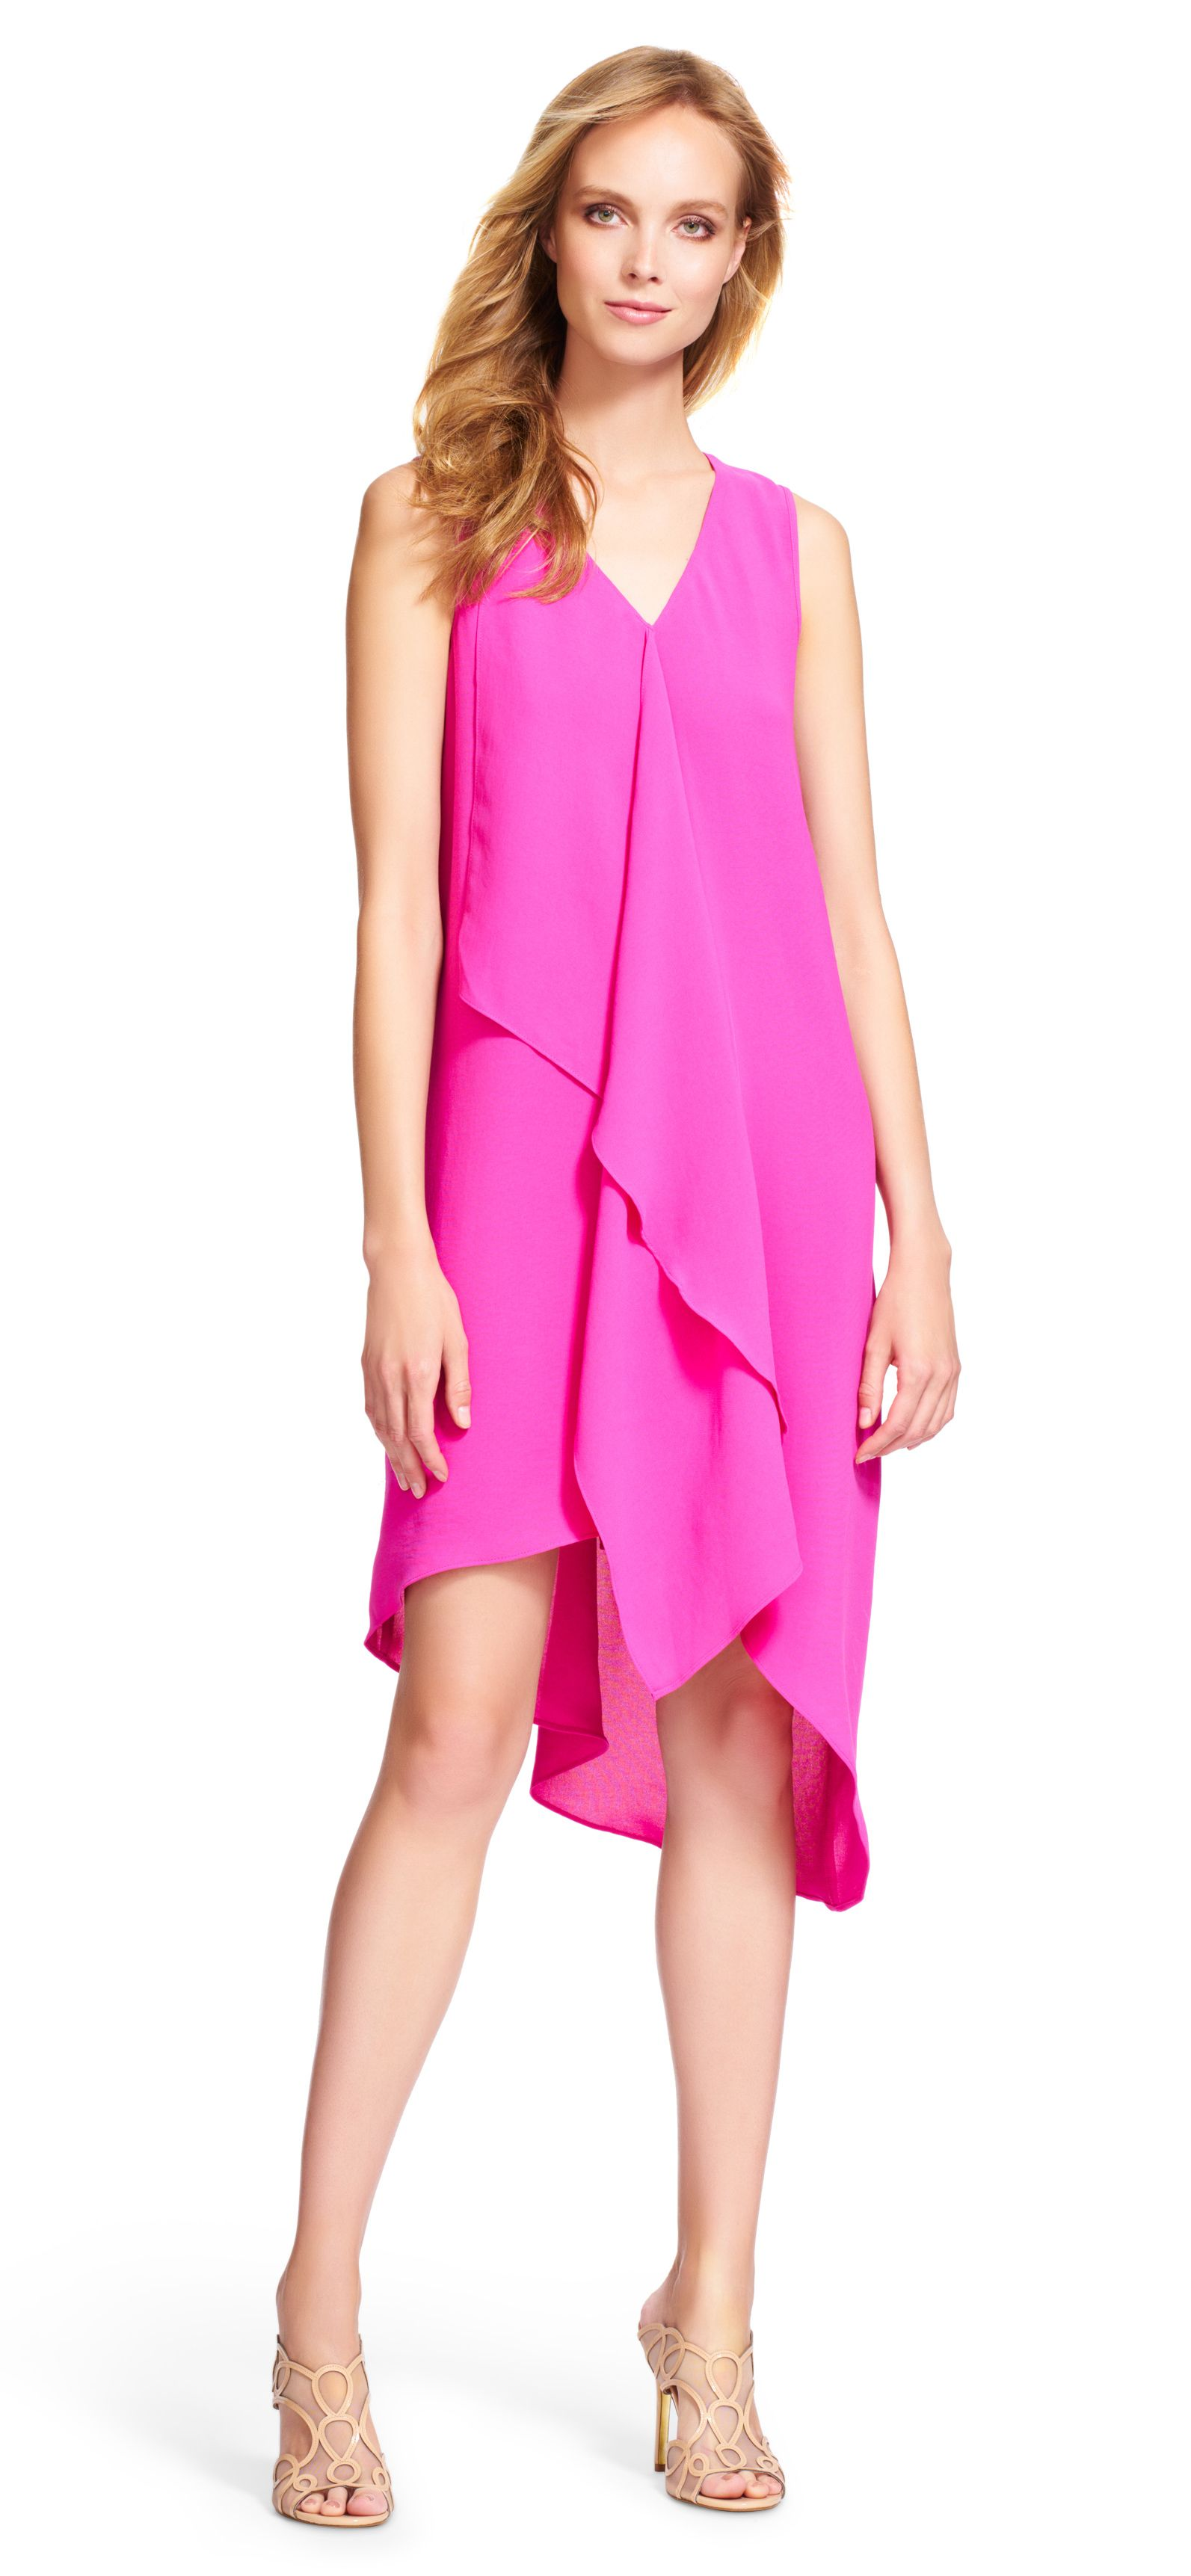 544865832a2f68 Adrianna Papell asymmetrical ruffle front dress | Ruffles lend a feminine  touch to this stylish asymmetrical V-neck cocktail dress, perfect for your  next ...